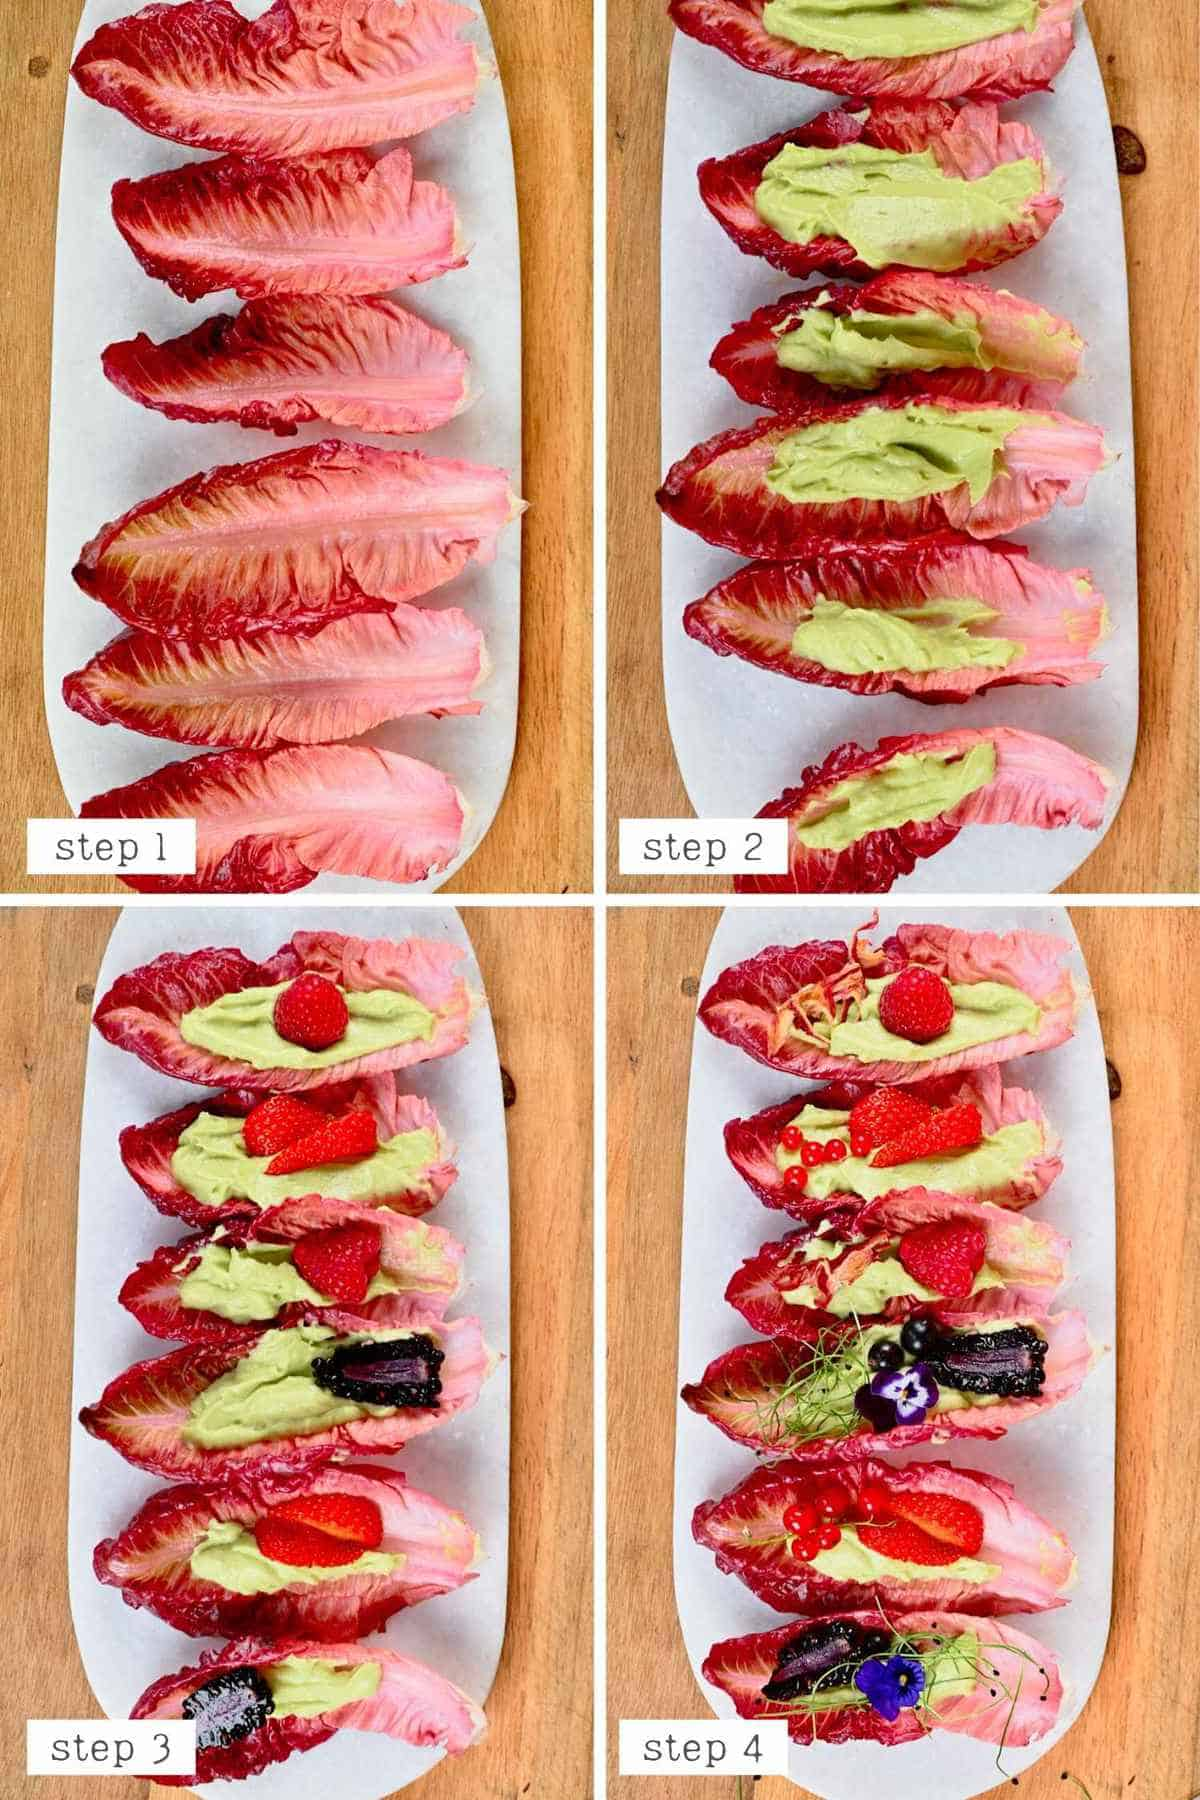 Steps for making berry lettuce wraps